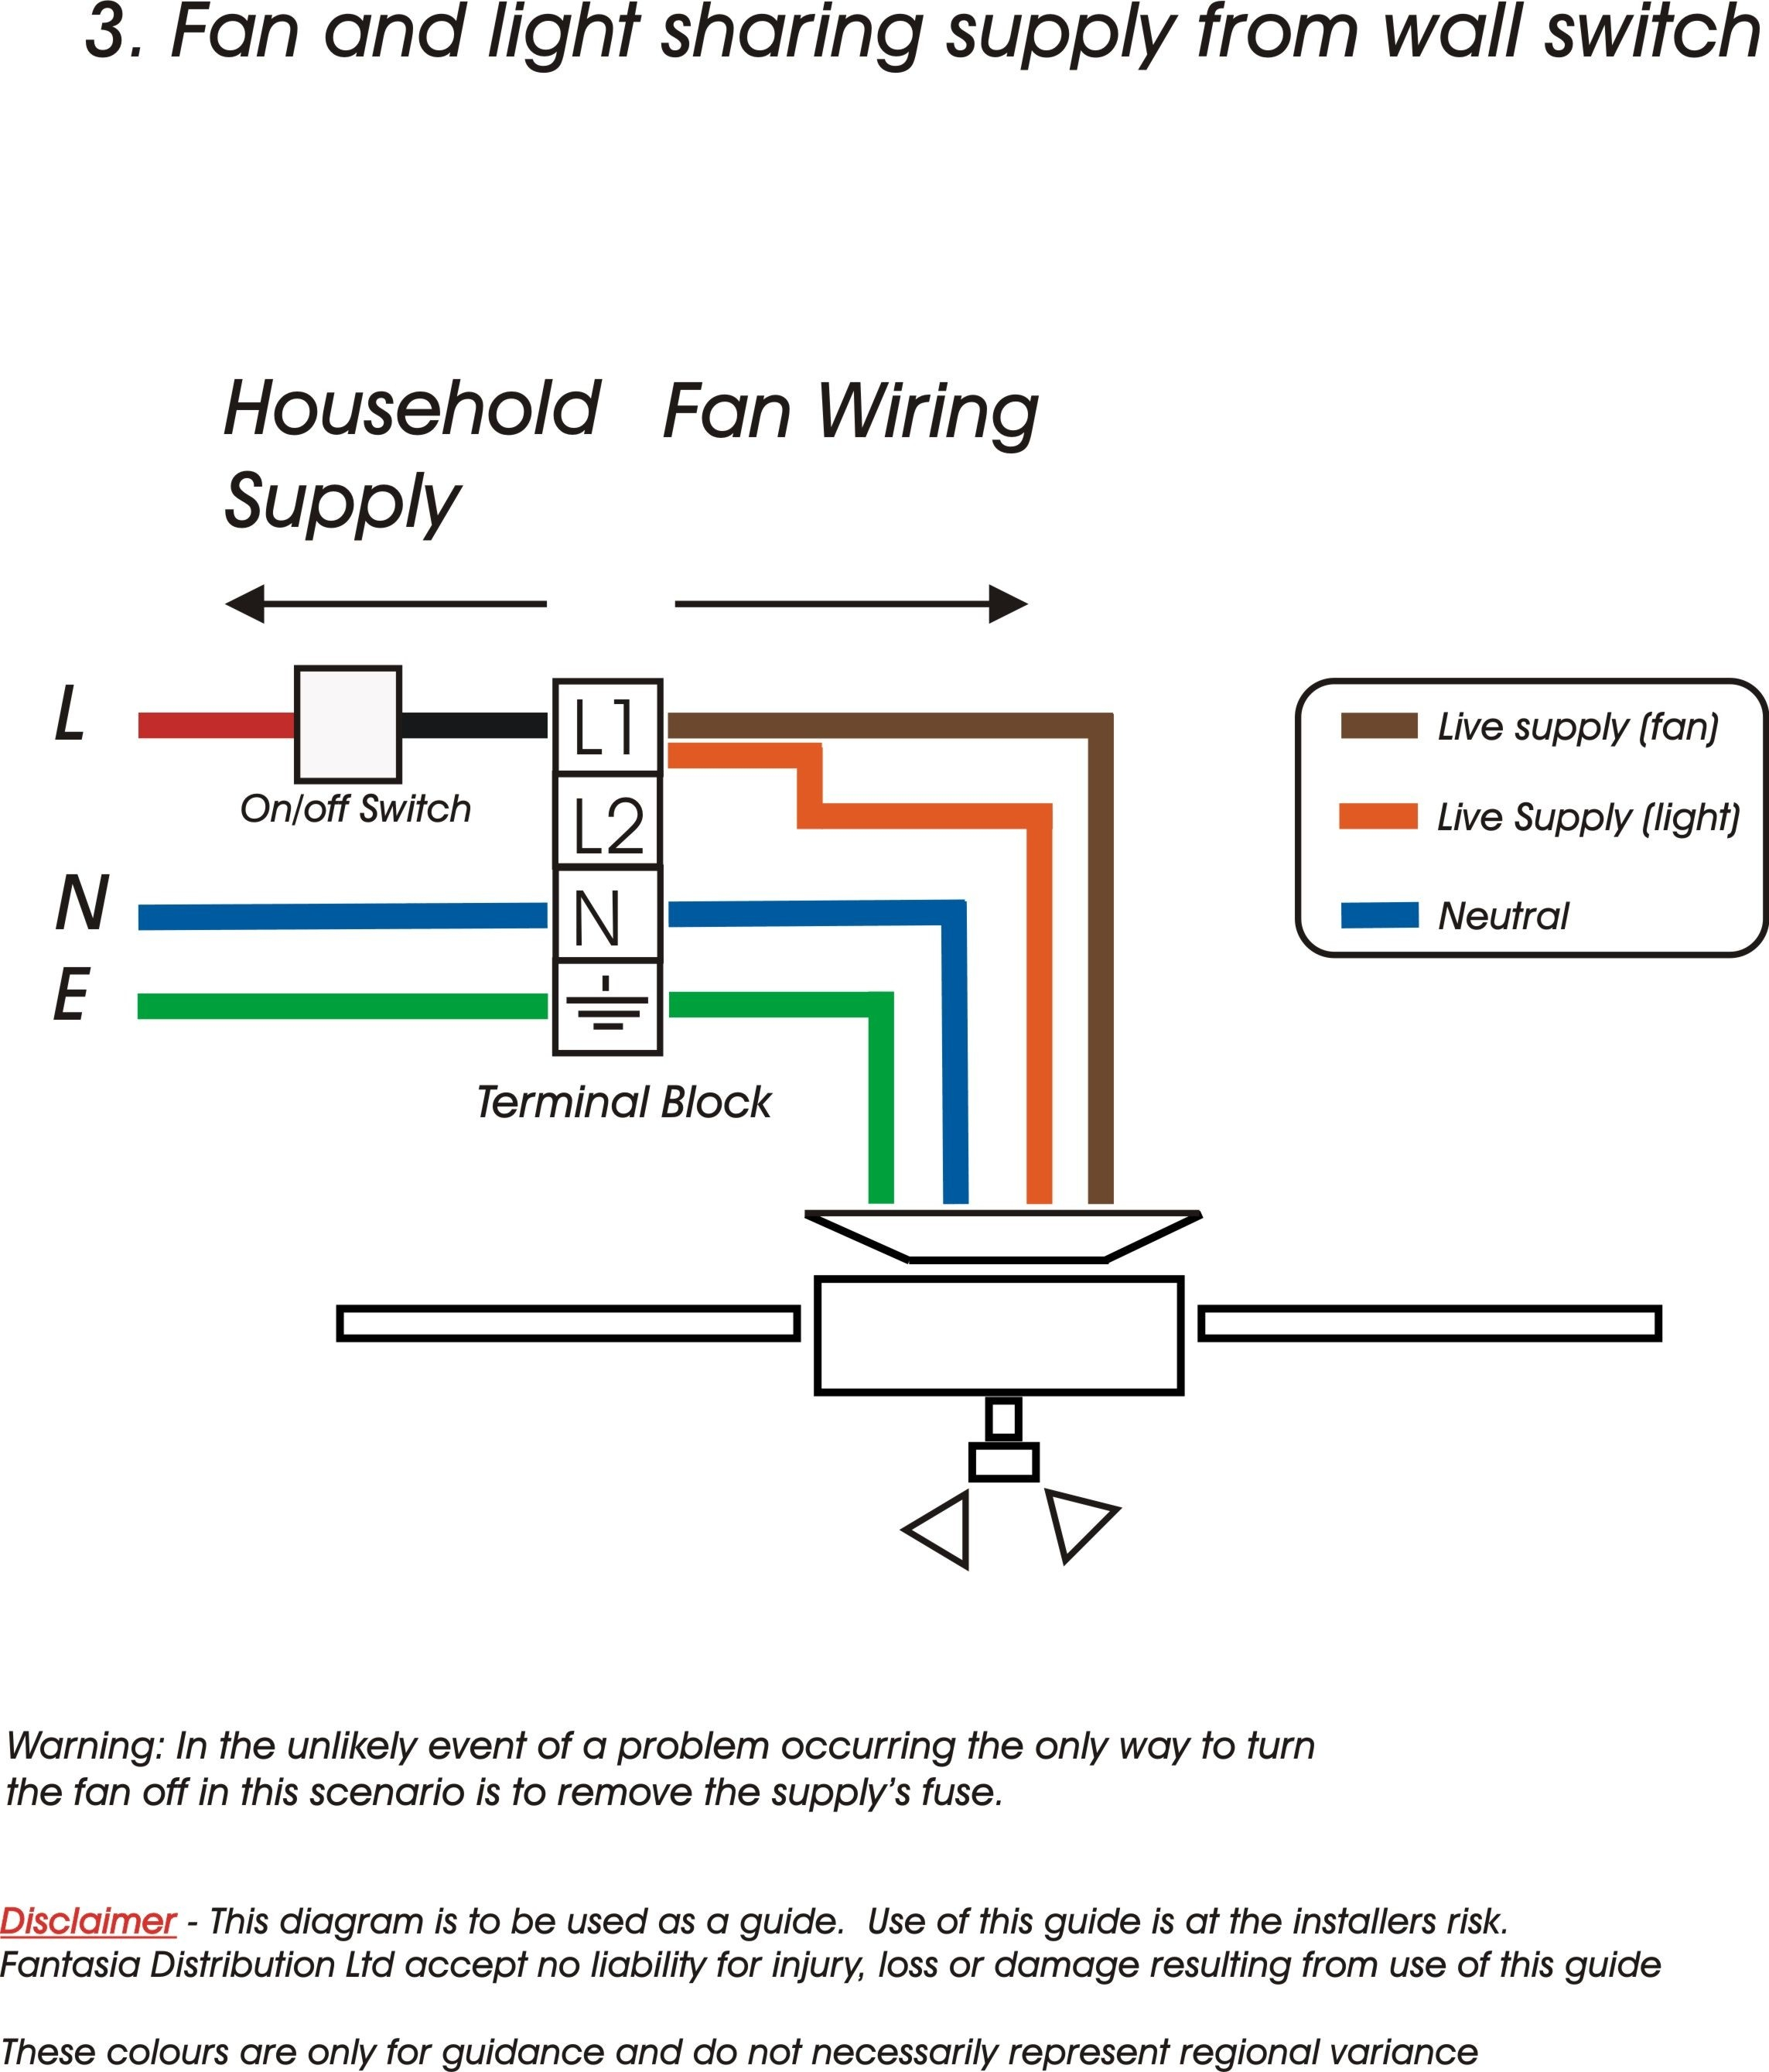 casablanca ceiling fan wiring diagram Download-Wiring Diagram For Casablanca Ceiling Fan Refrence Fan Control Switch 3 Way Ceiling Pull Chain Casablanca Fans Pulls 10-e